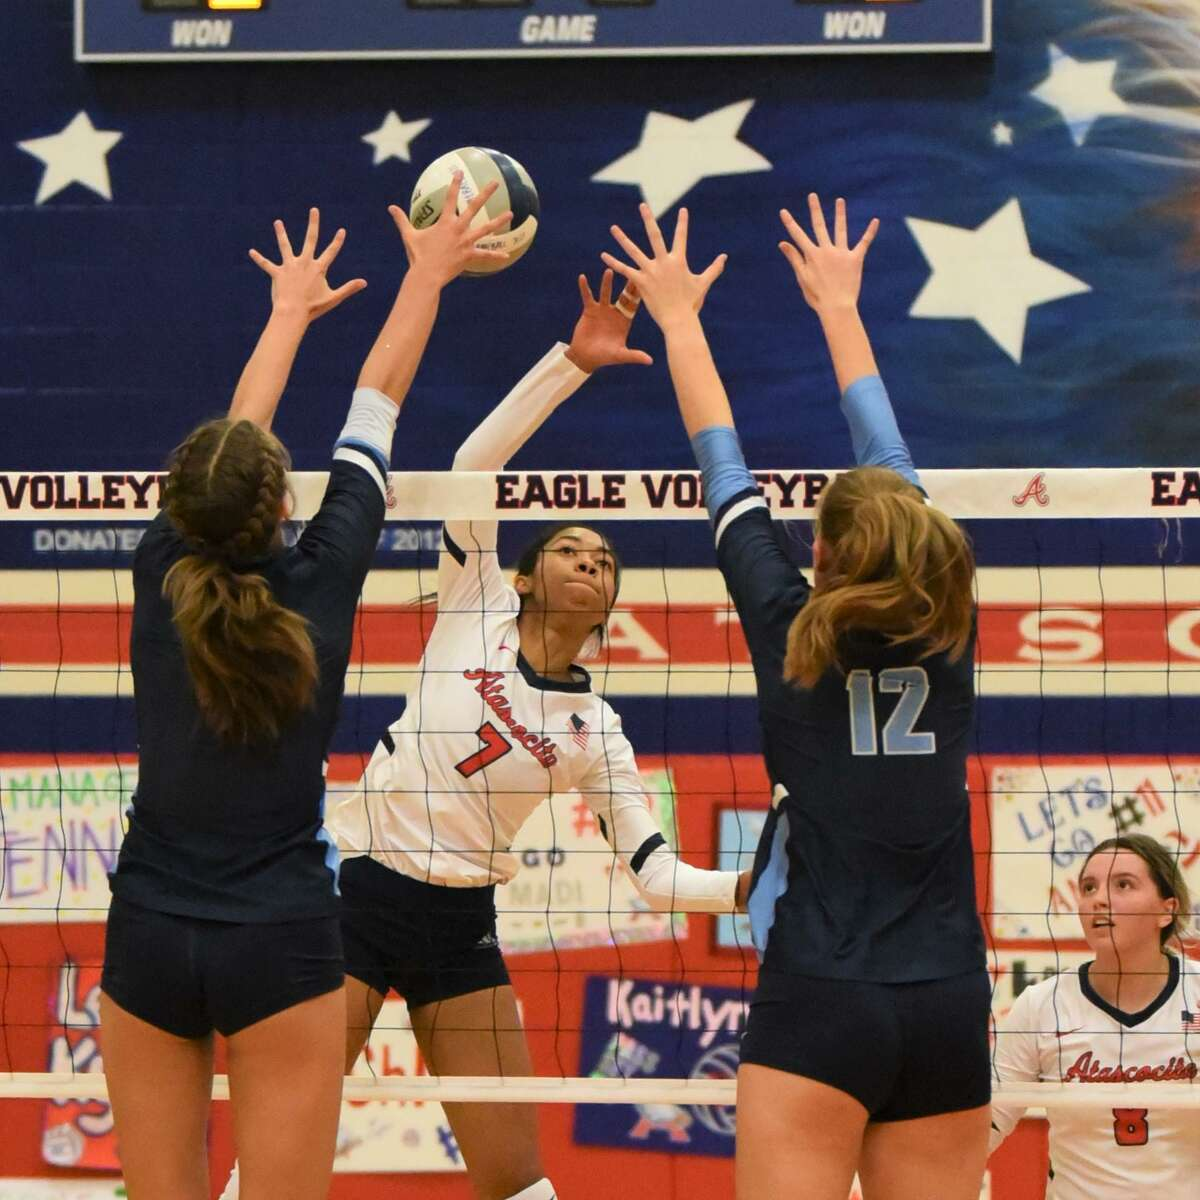 Atascocita's Brooke Williams goes up for a kill against Kingwood in a District 21-6A match at the Atascocita gym.